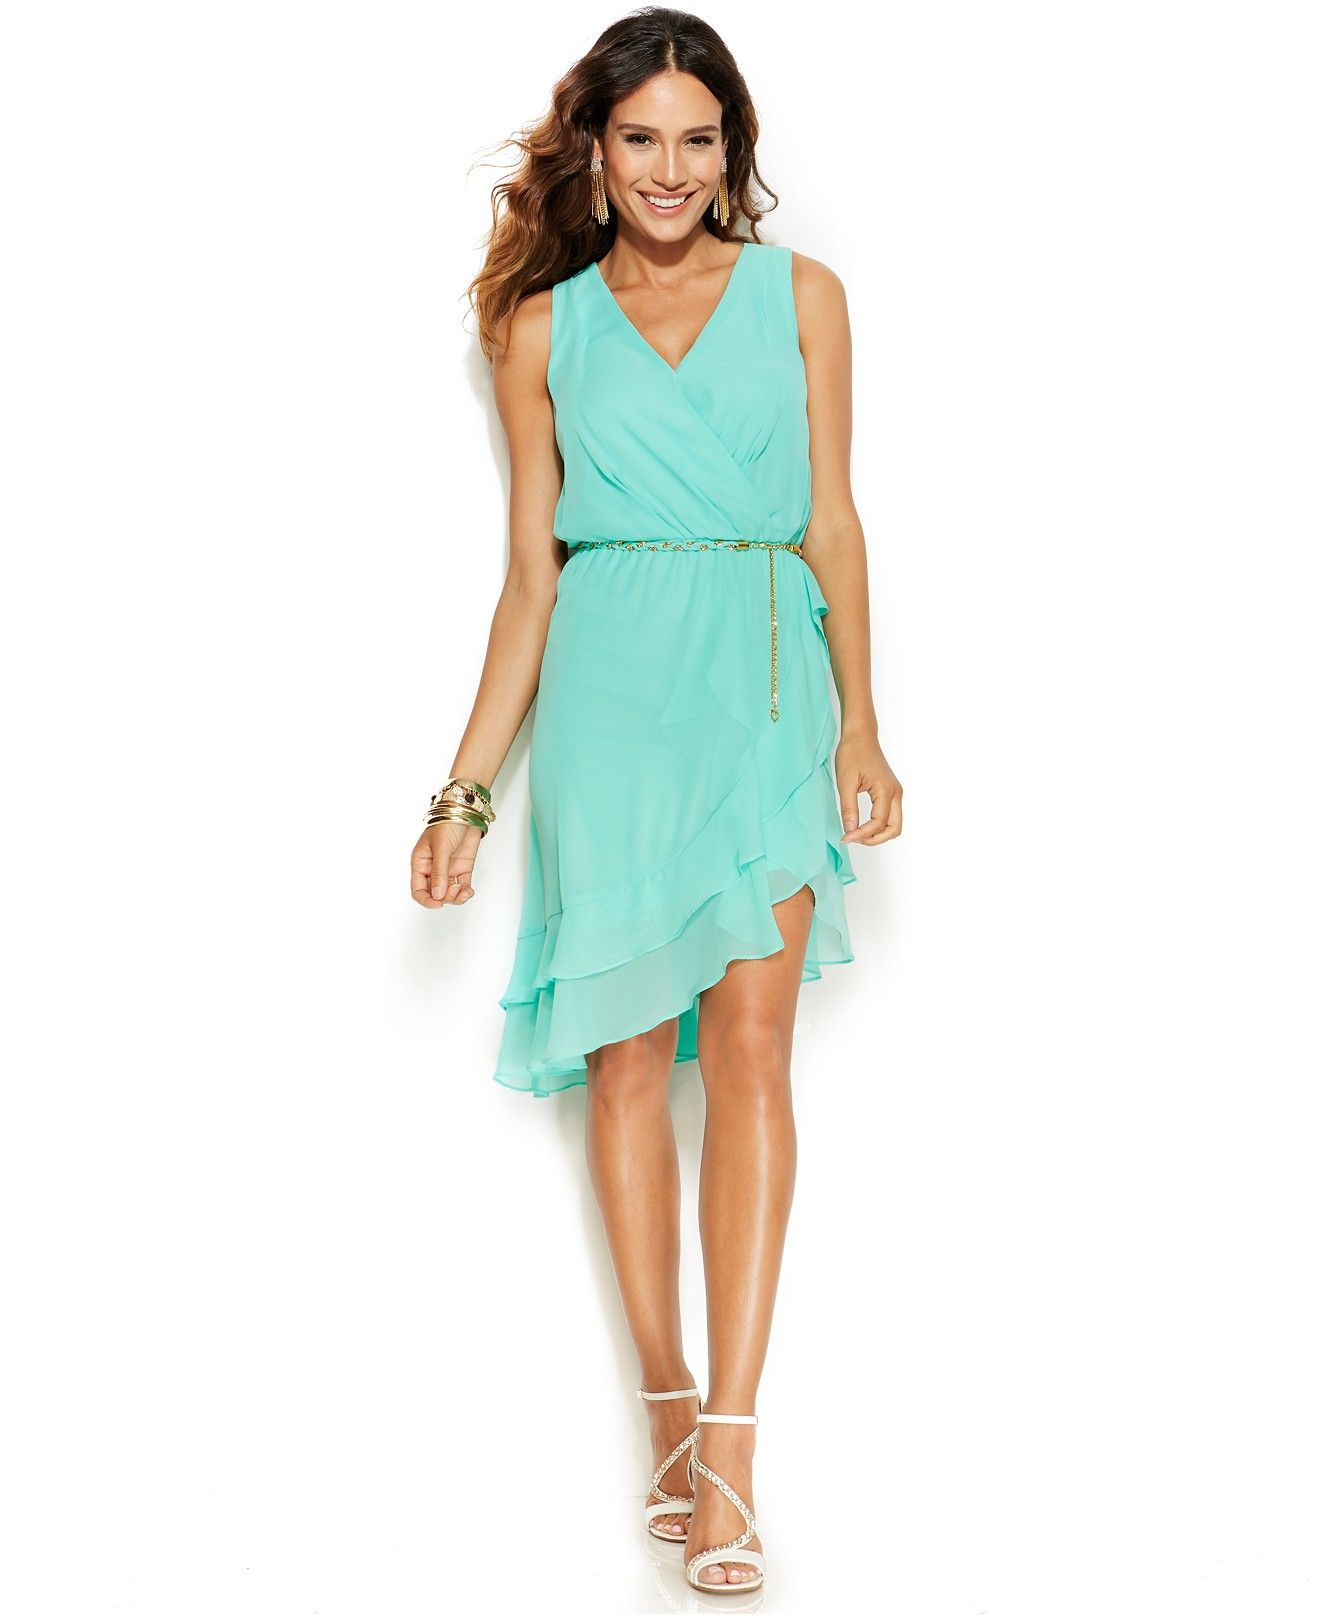 Thalia Sodi Ruffle-Hem Belted Faux-Wrap Dress - Dresses - Women ...